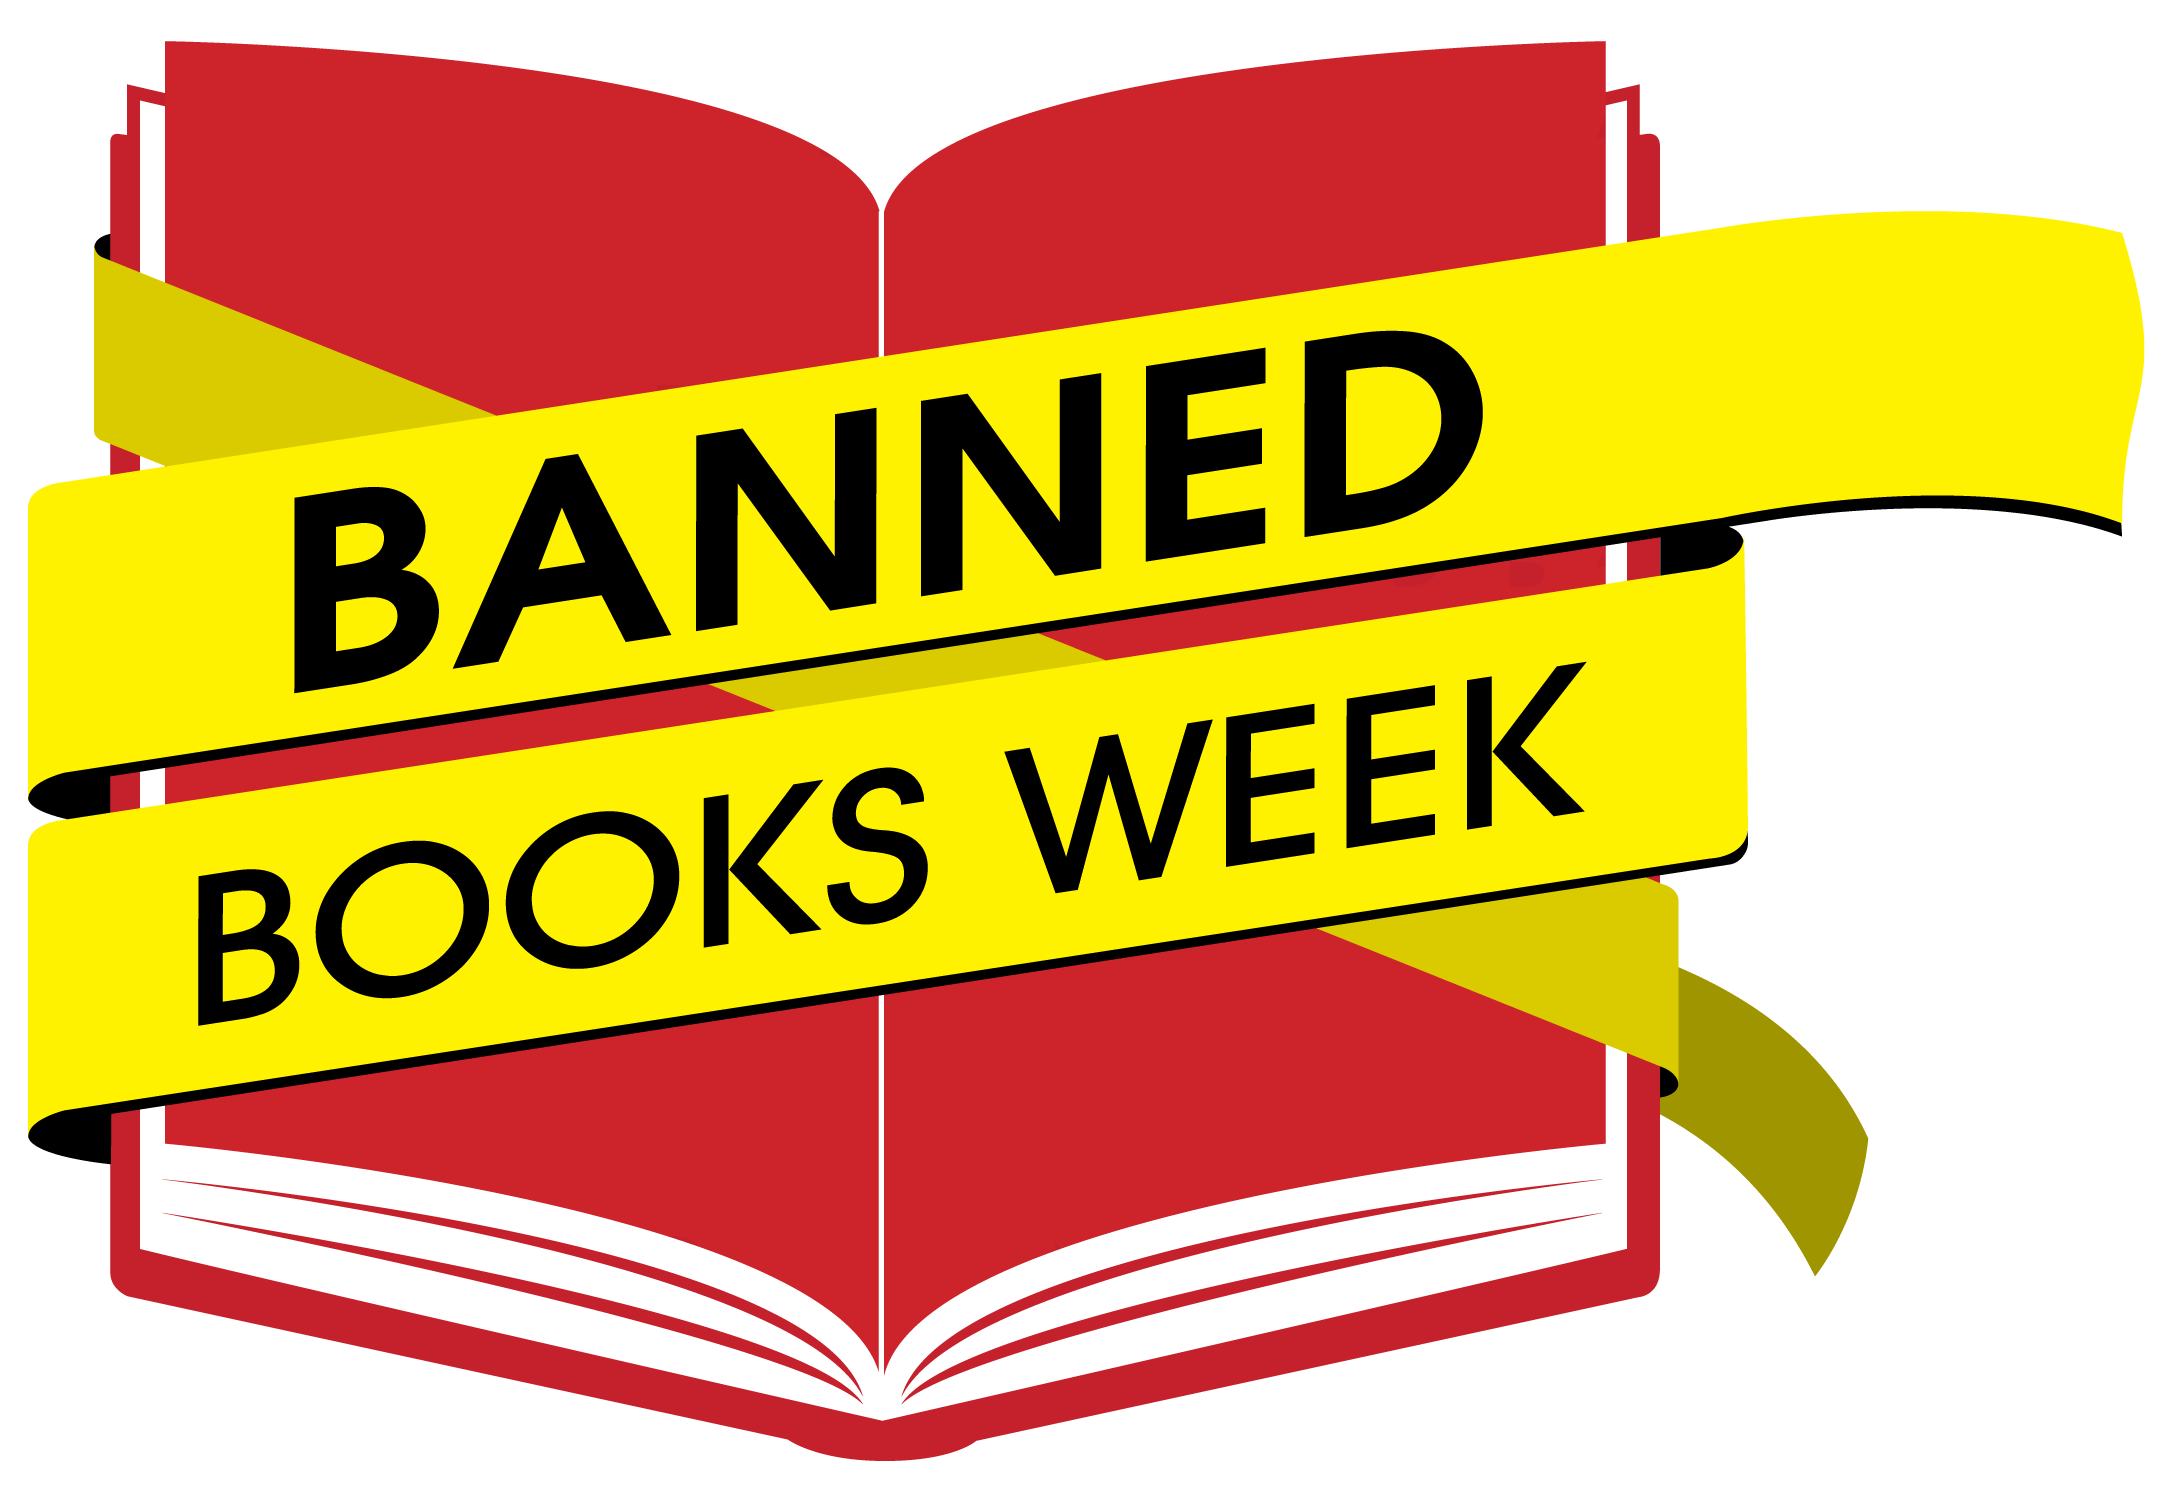 Banned Books Week Logo - a book with yellow caution tape wrapping it up